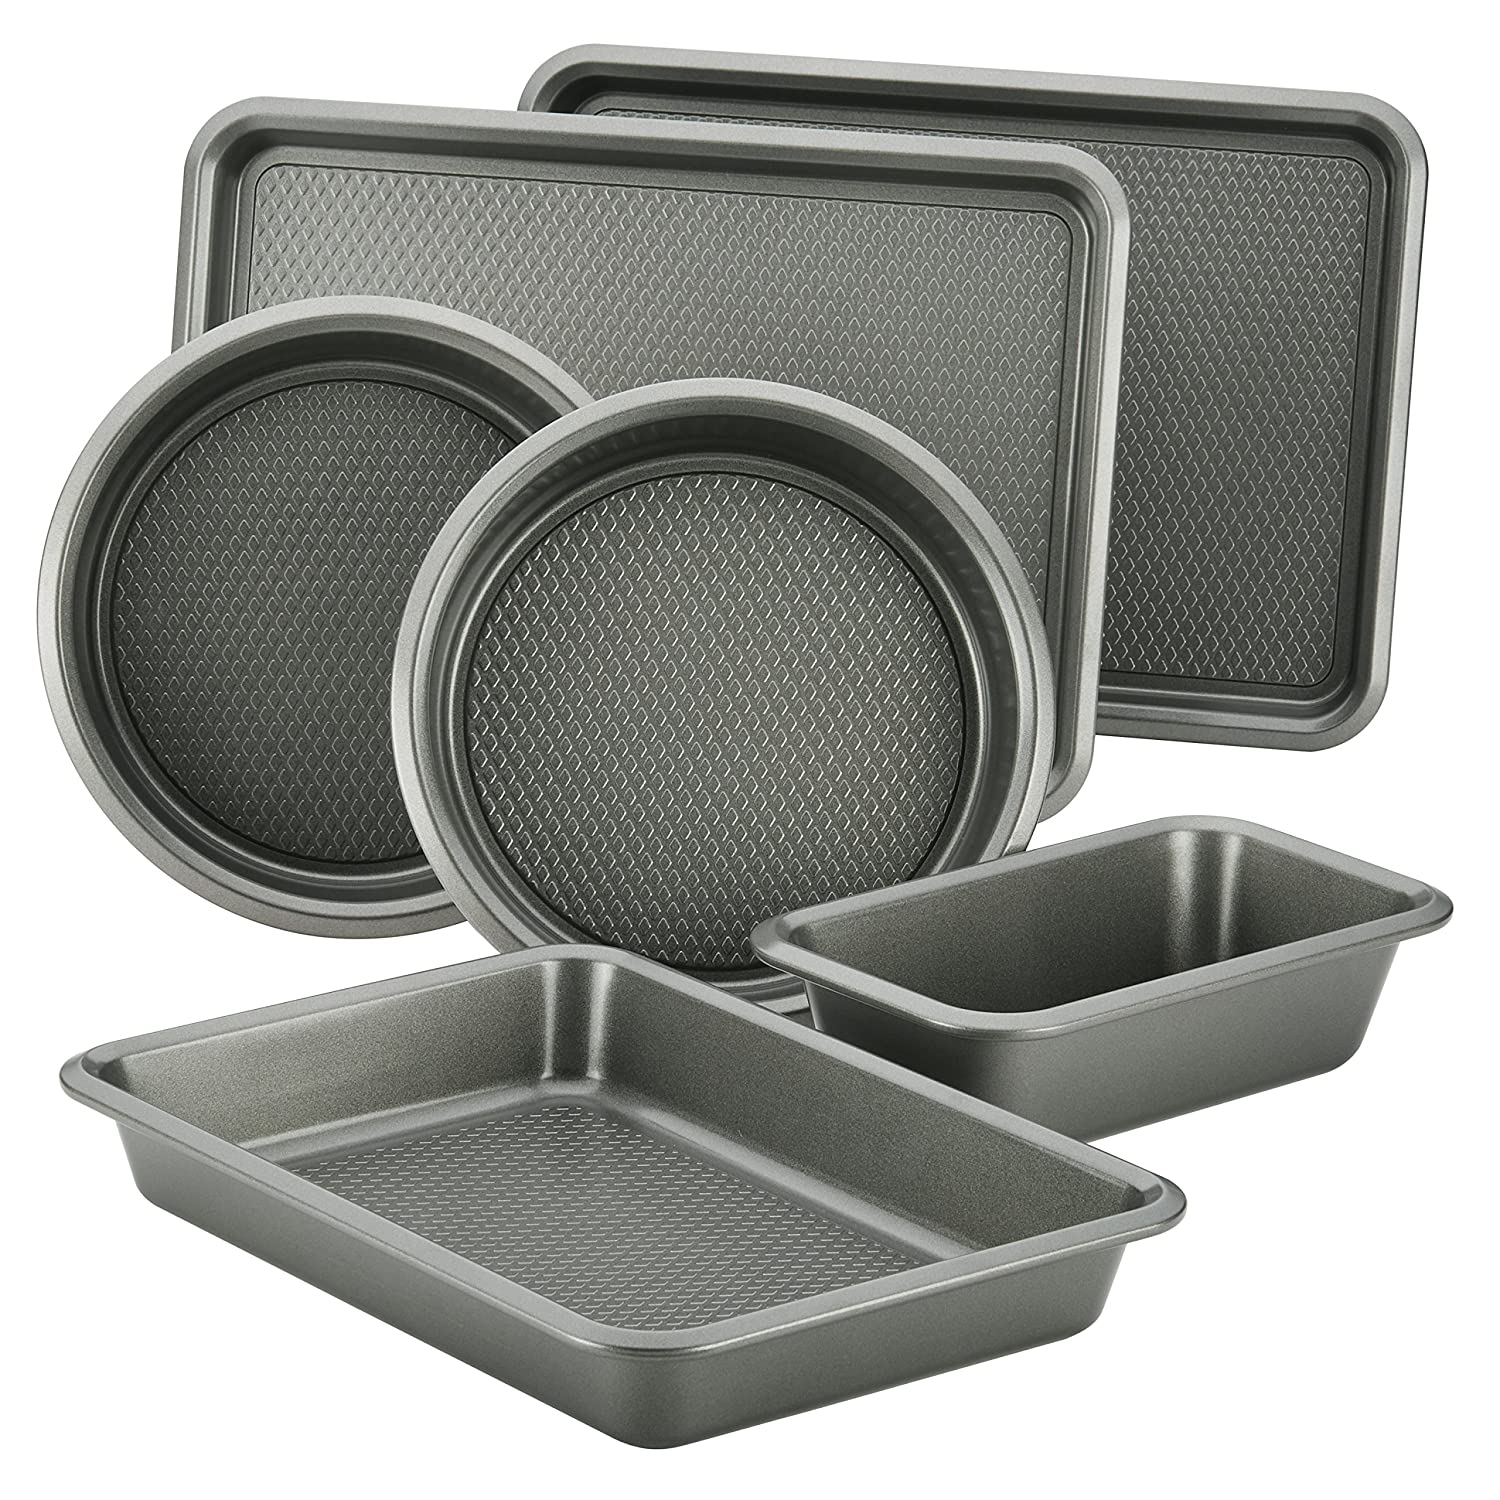 Ayesha Curry Bakeware Set, Copper, 6-Piece 47192